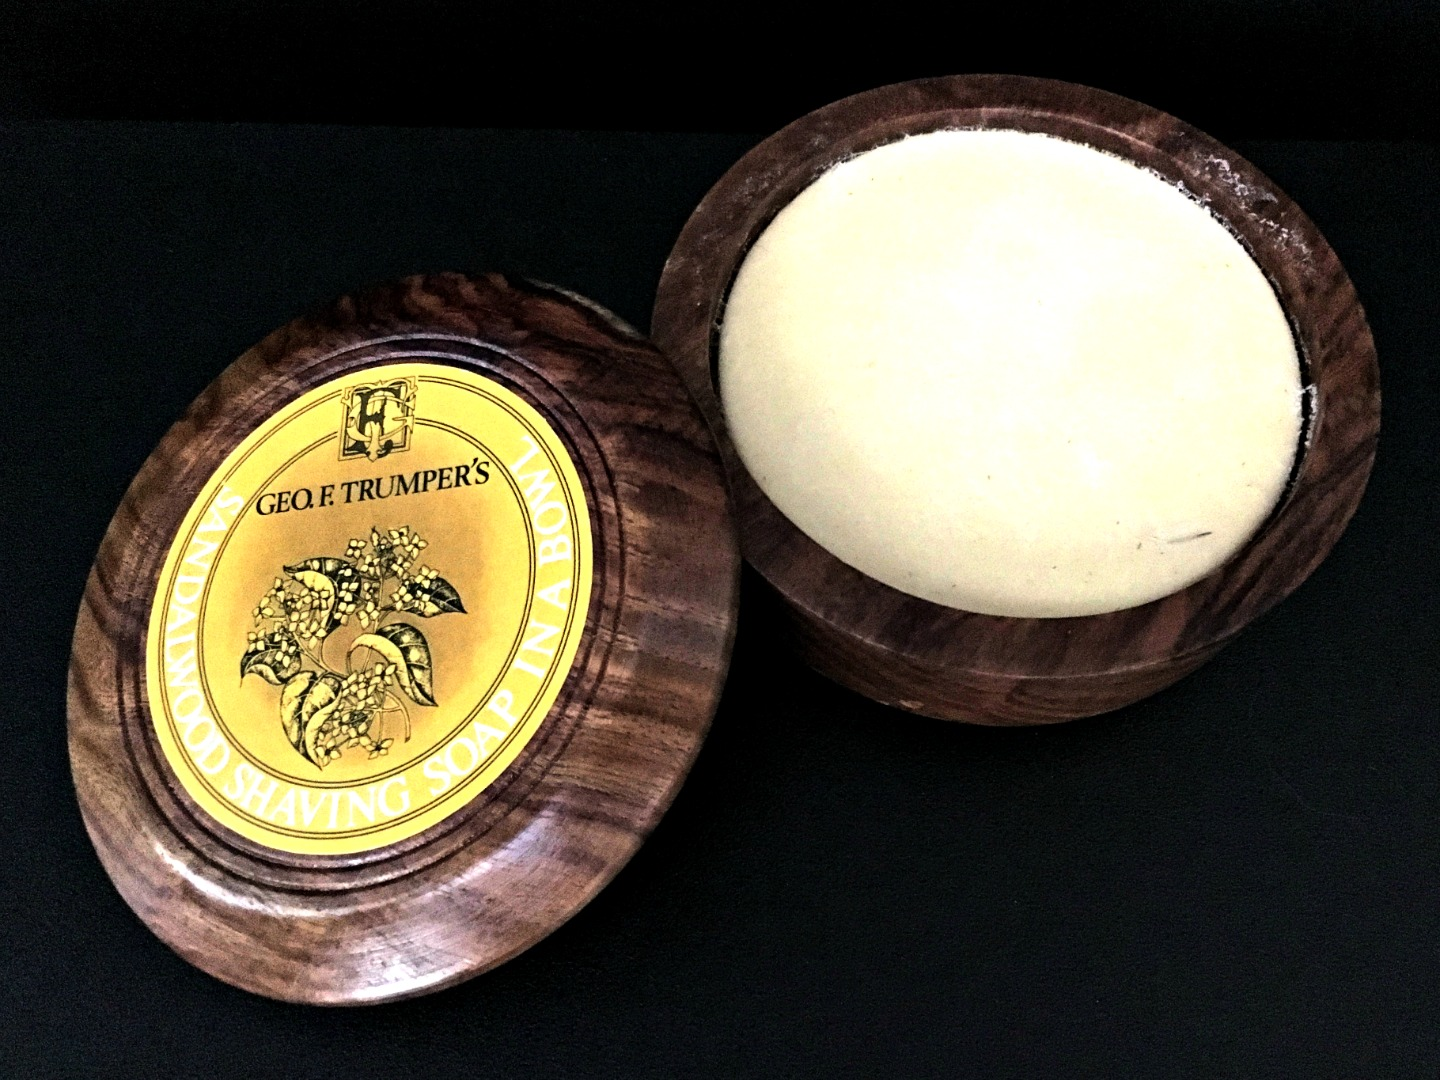 Geo F Trumper Sandalwood Shaving Soap